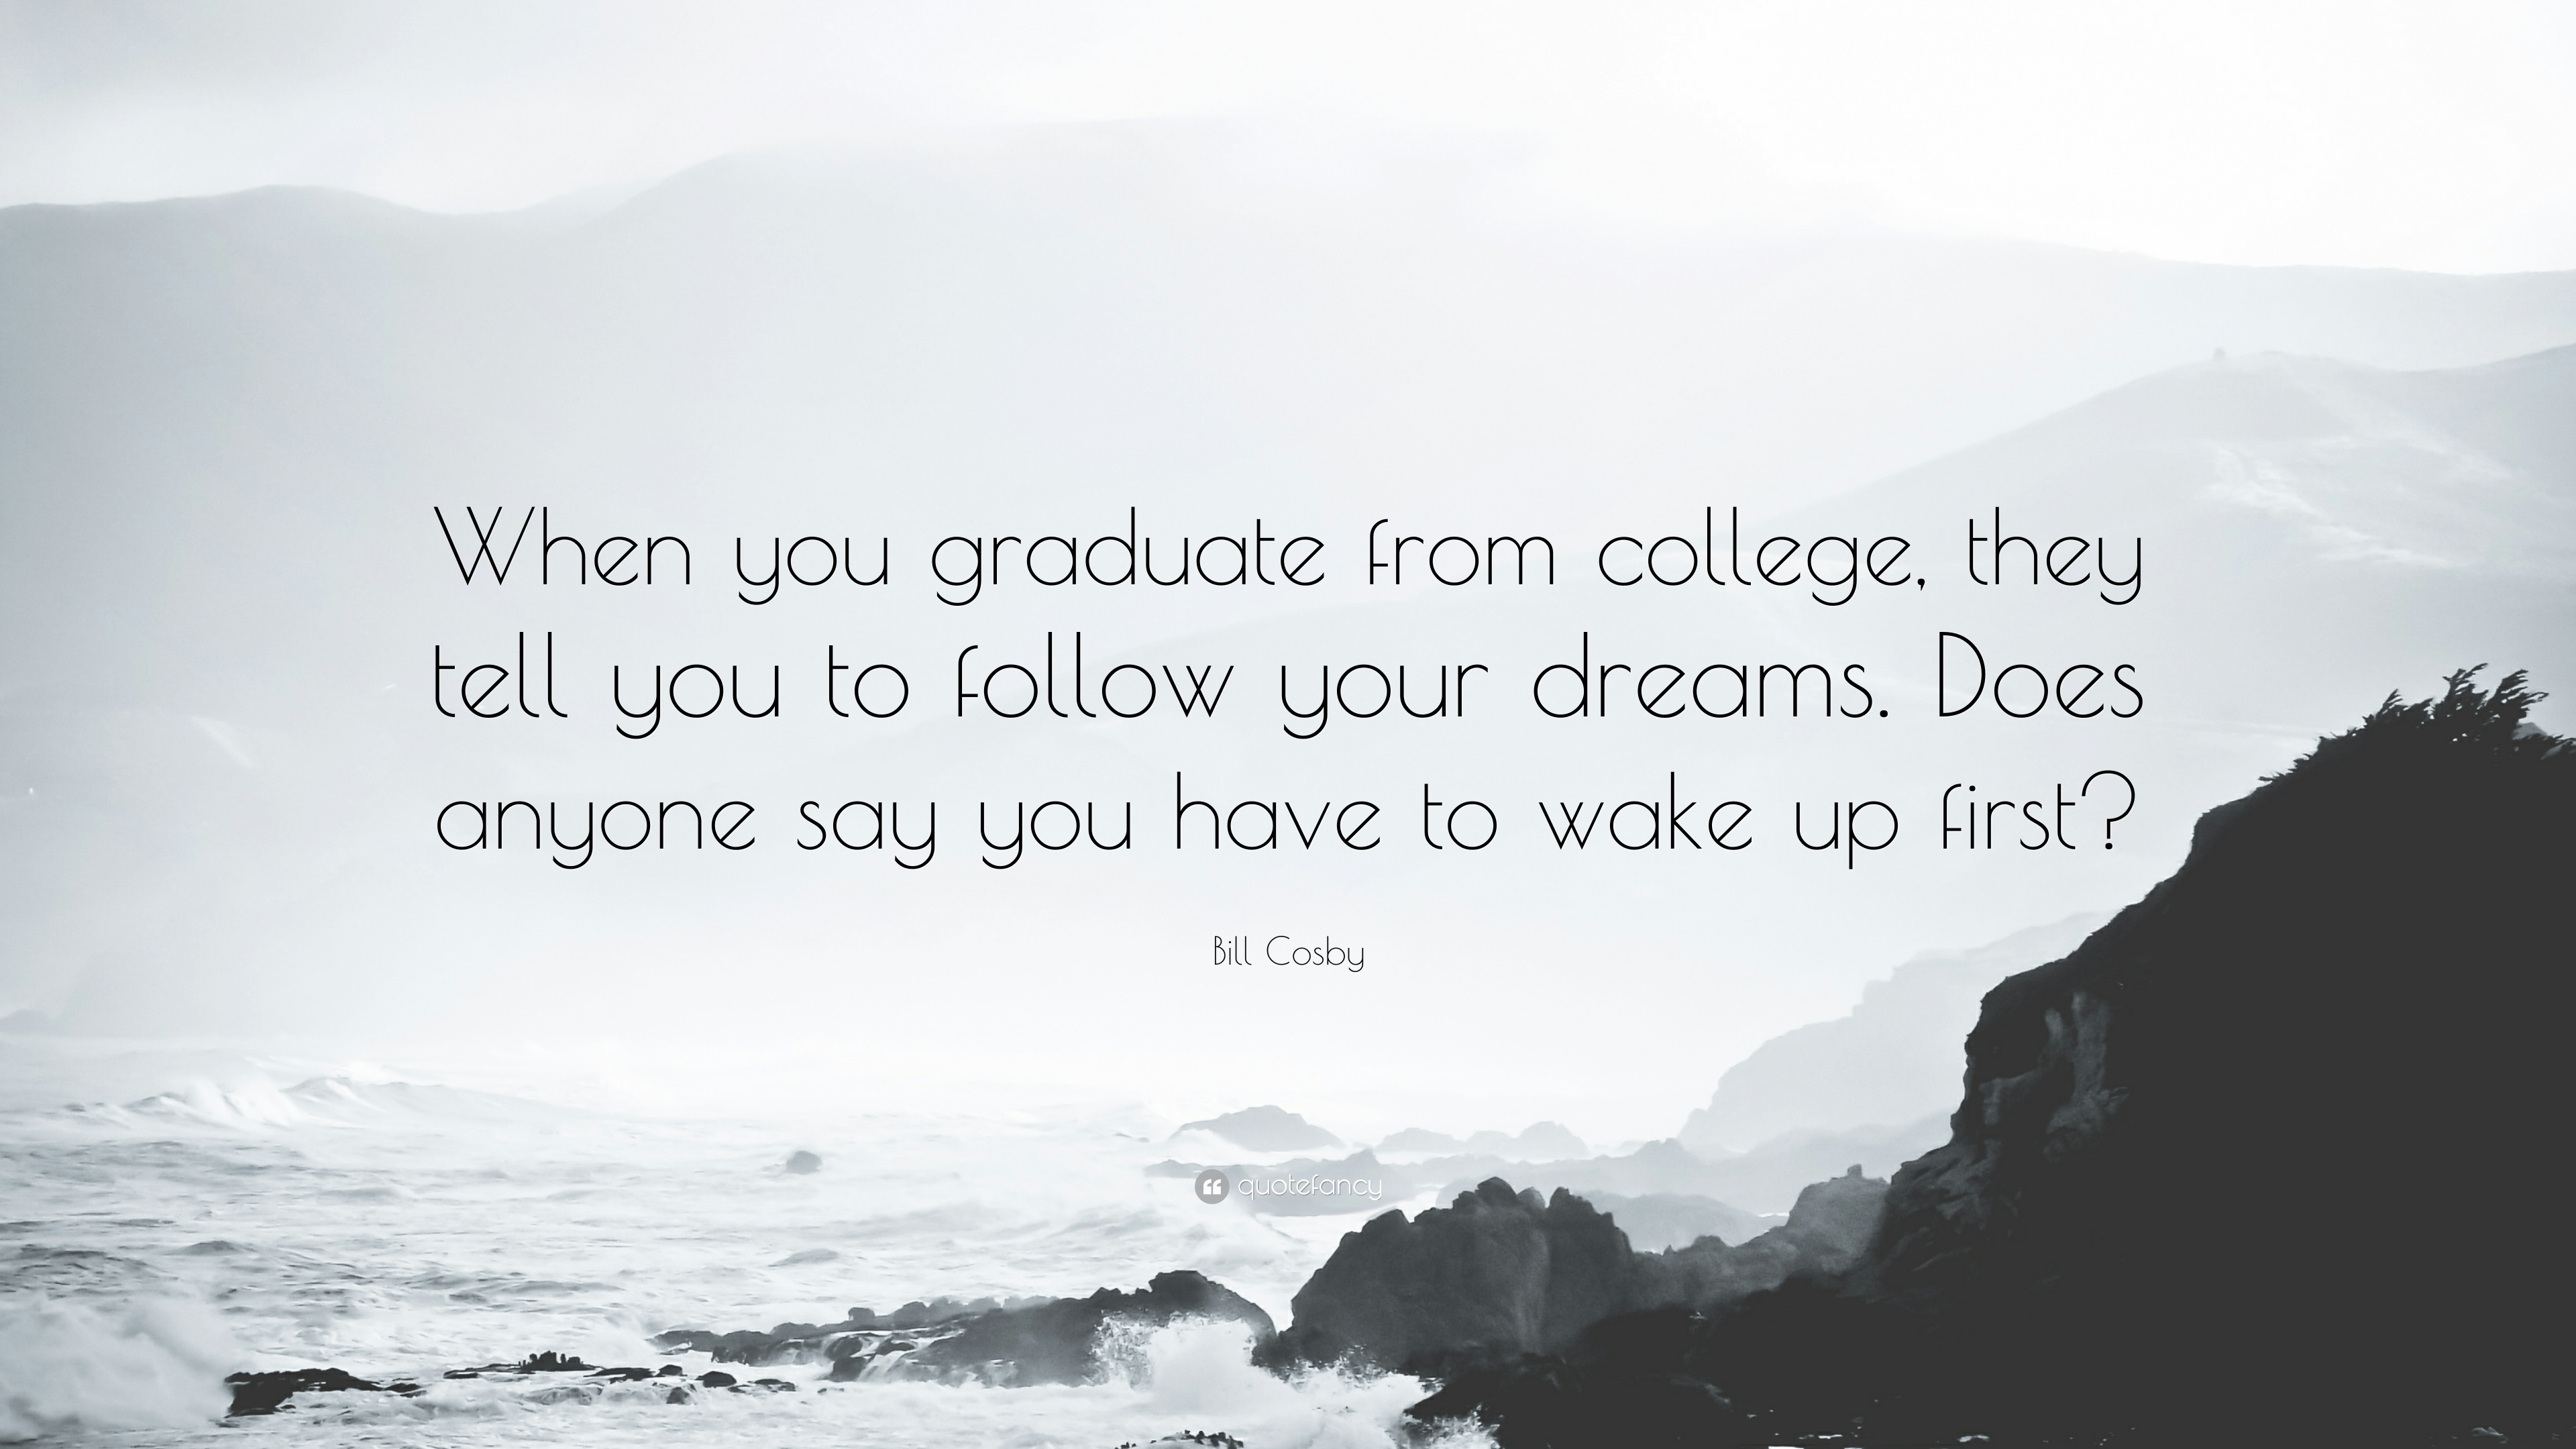 bill cosby quote when you graduate from college they tell you bill cosby quote when you graduate from college they tell you to follow